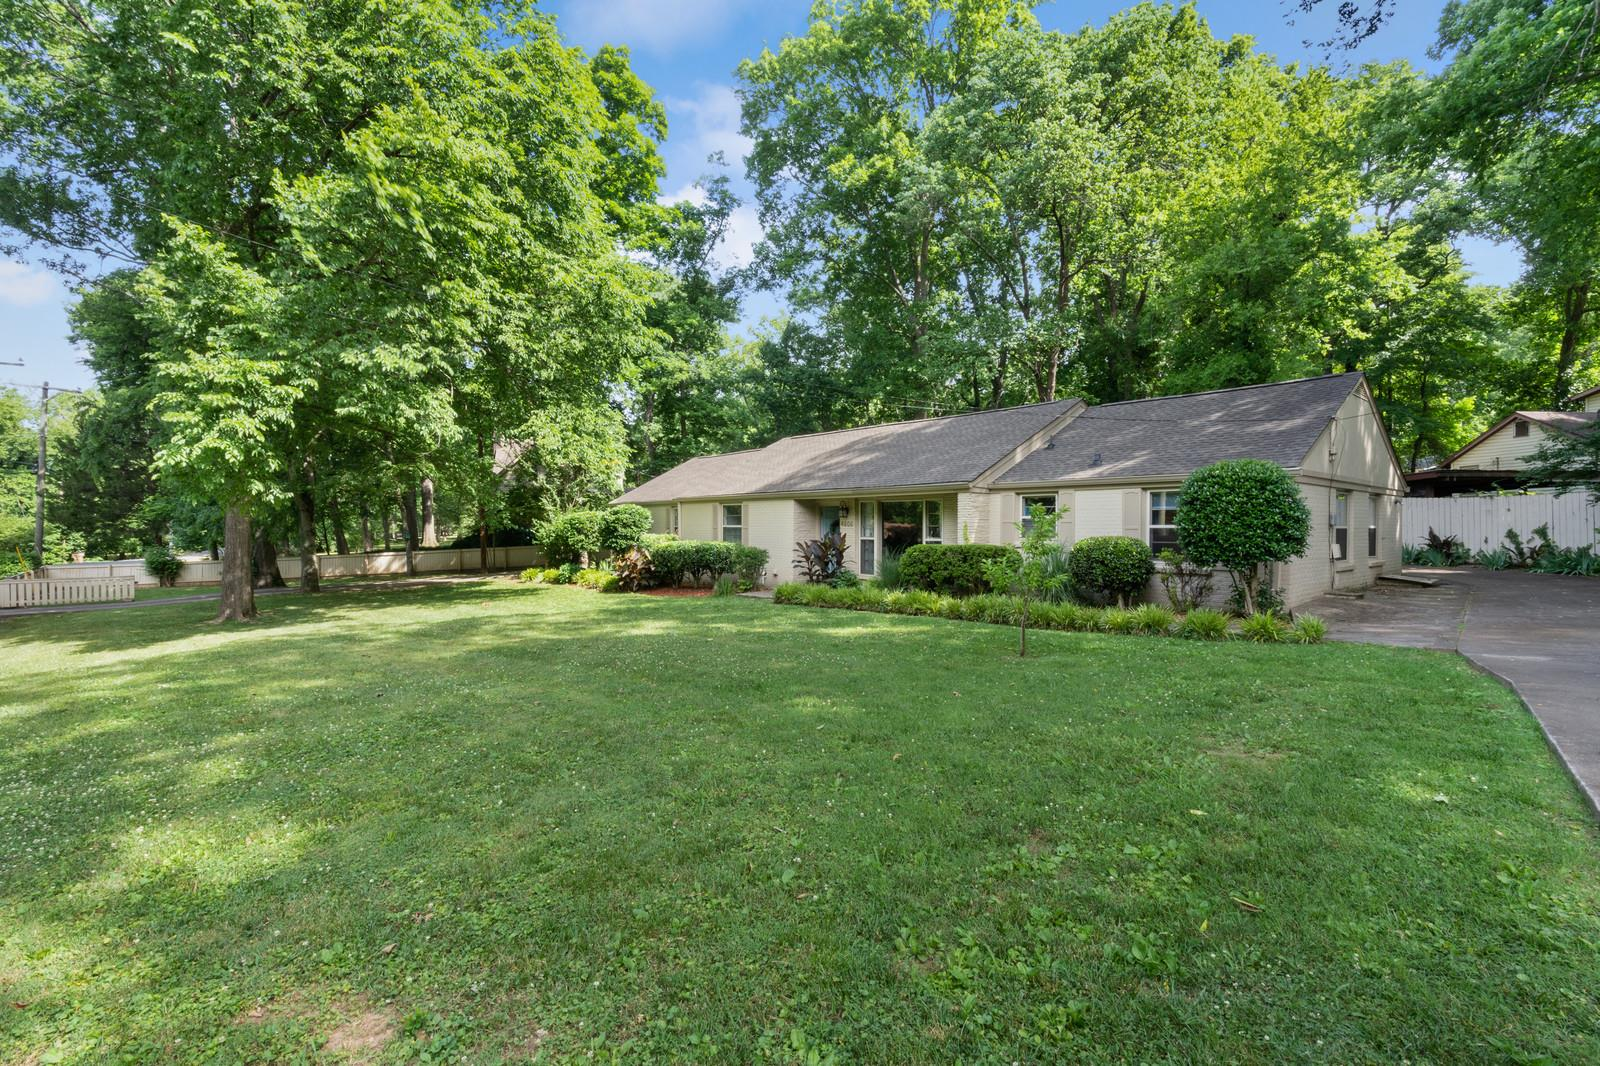 4606 Log Cabin Rd, Nashville, TN 37216 - Nashville, TN real estate listing